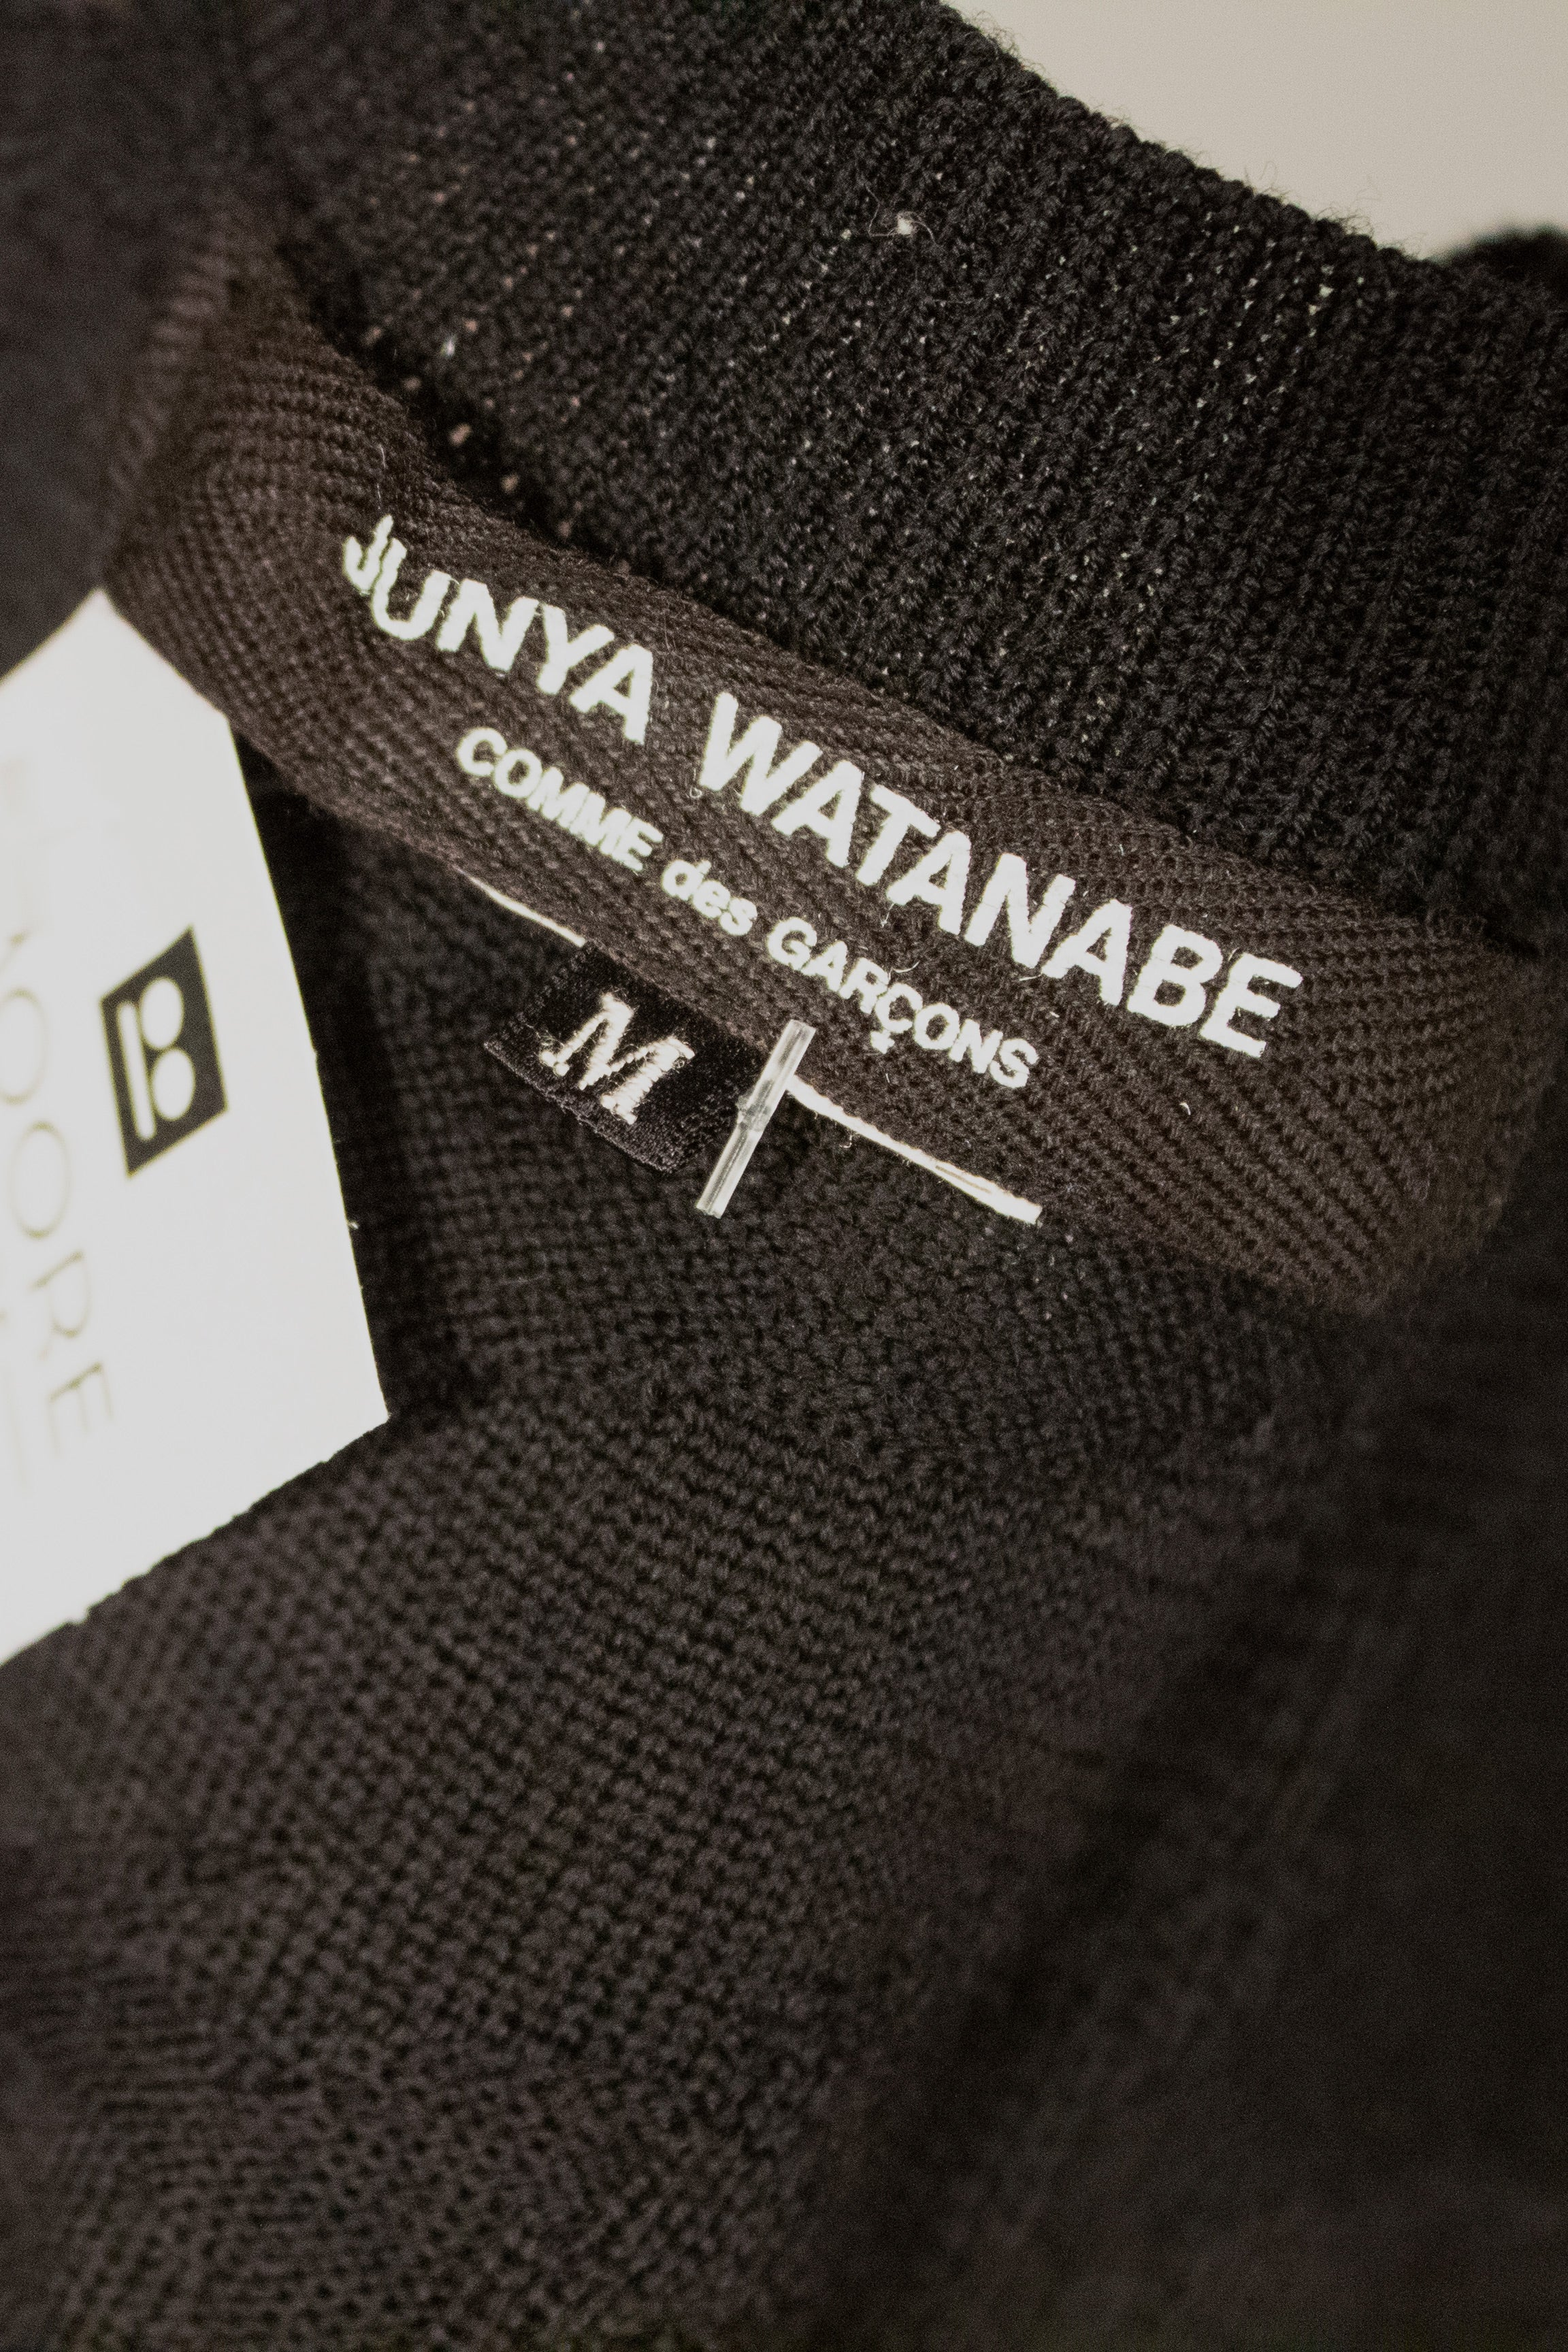 Junya Watanabe black loose knit tank dress